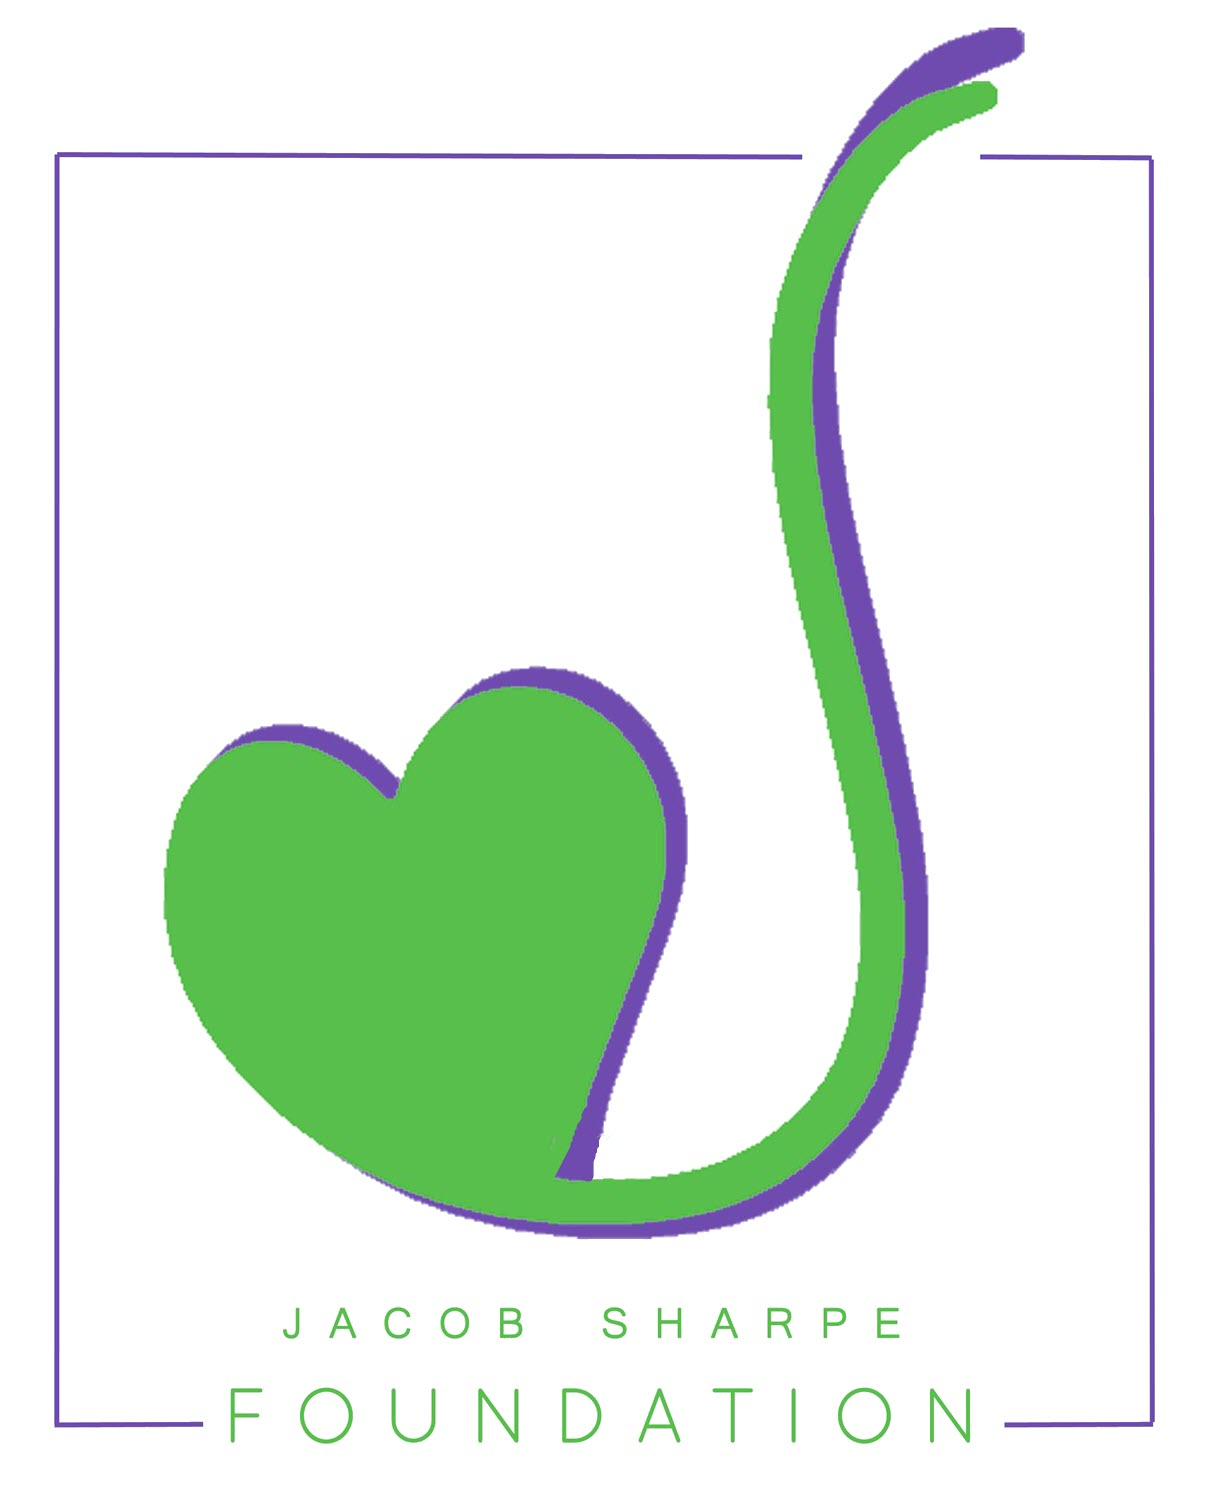 Jacob Sharpe Foundation